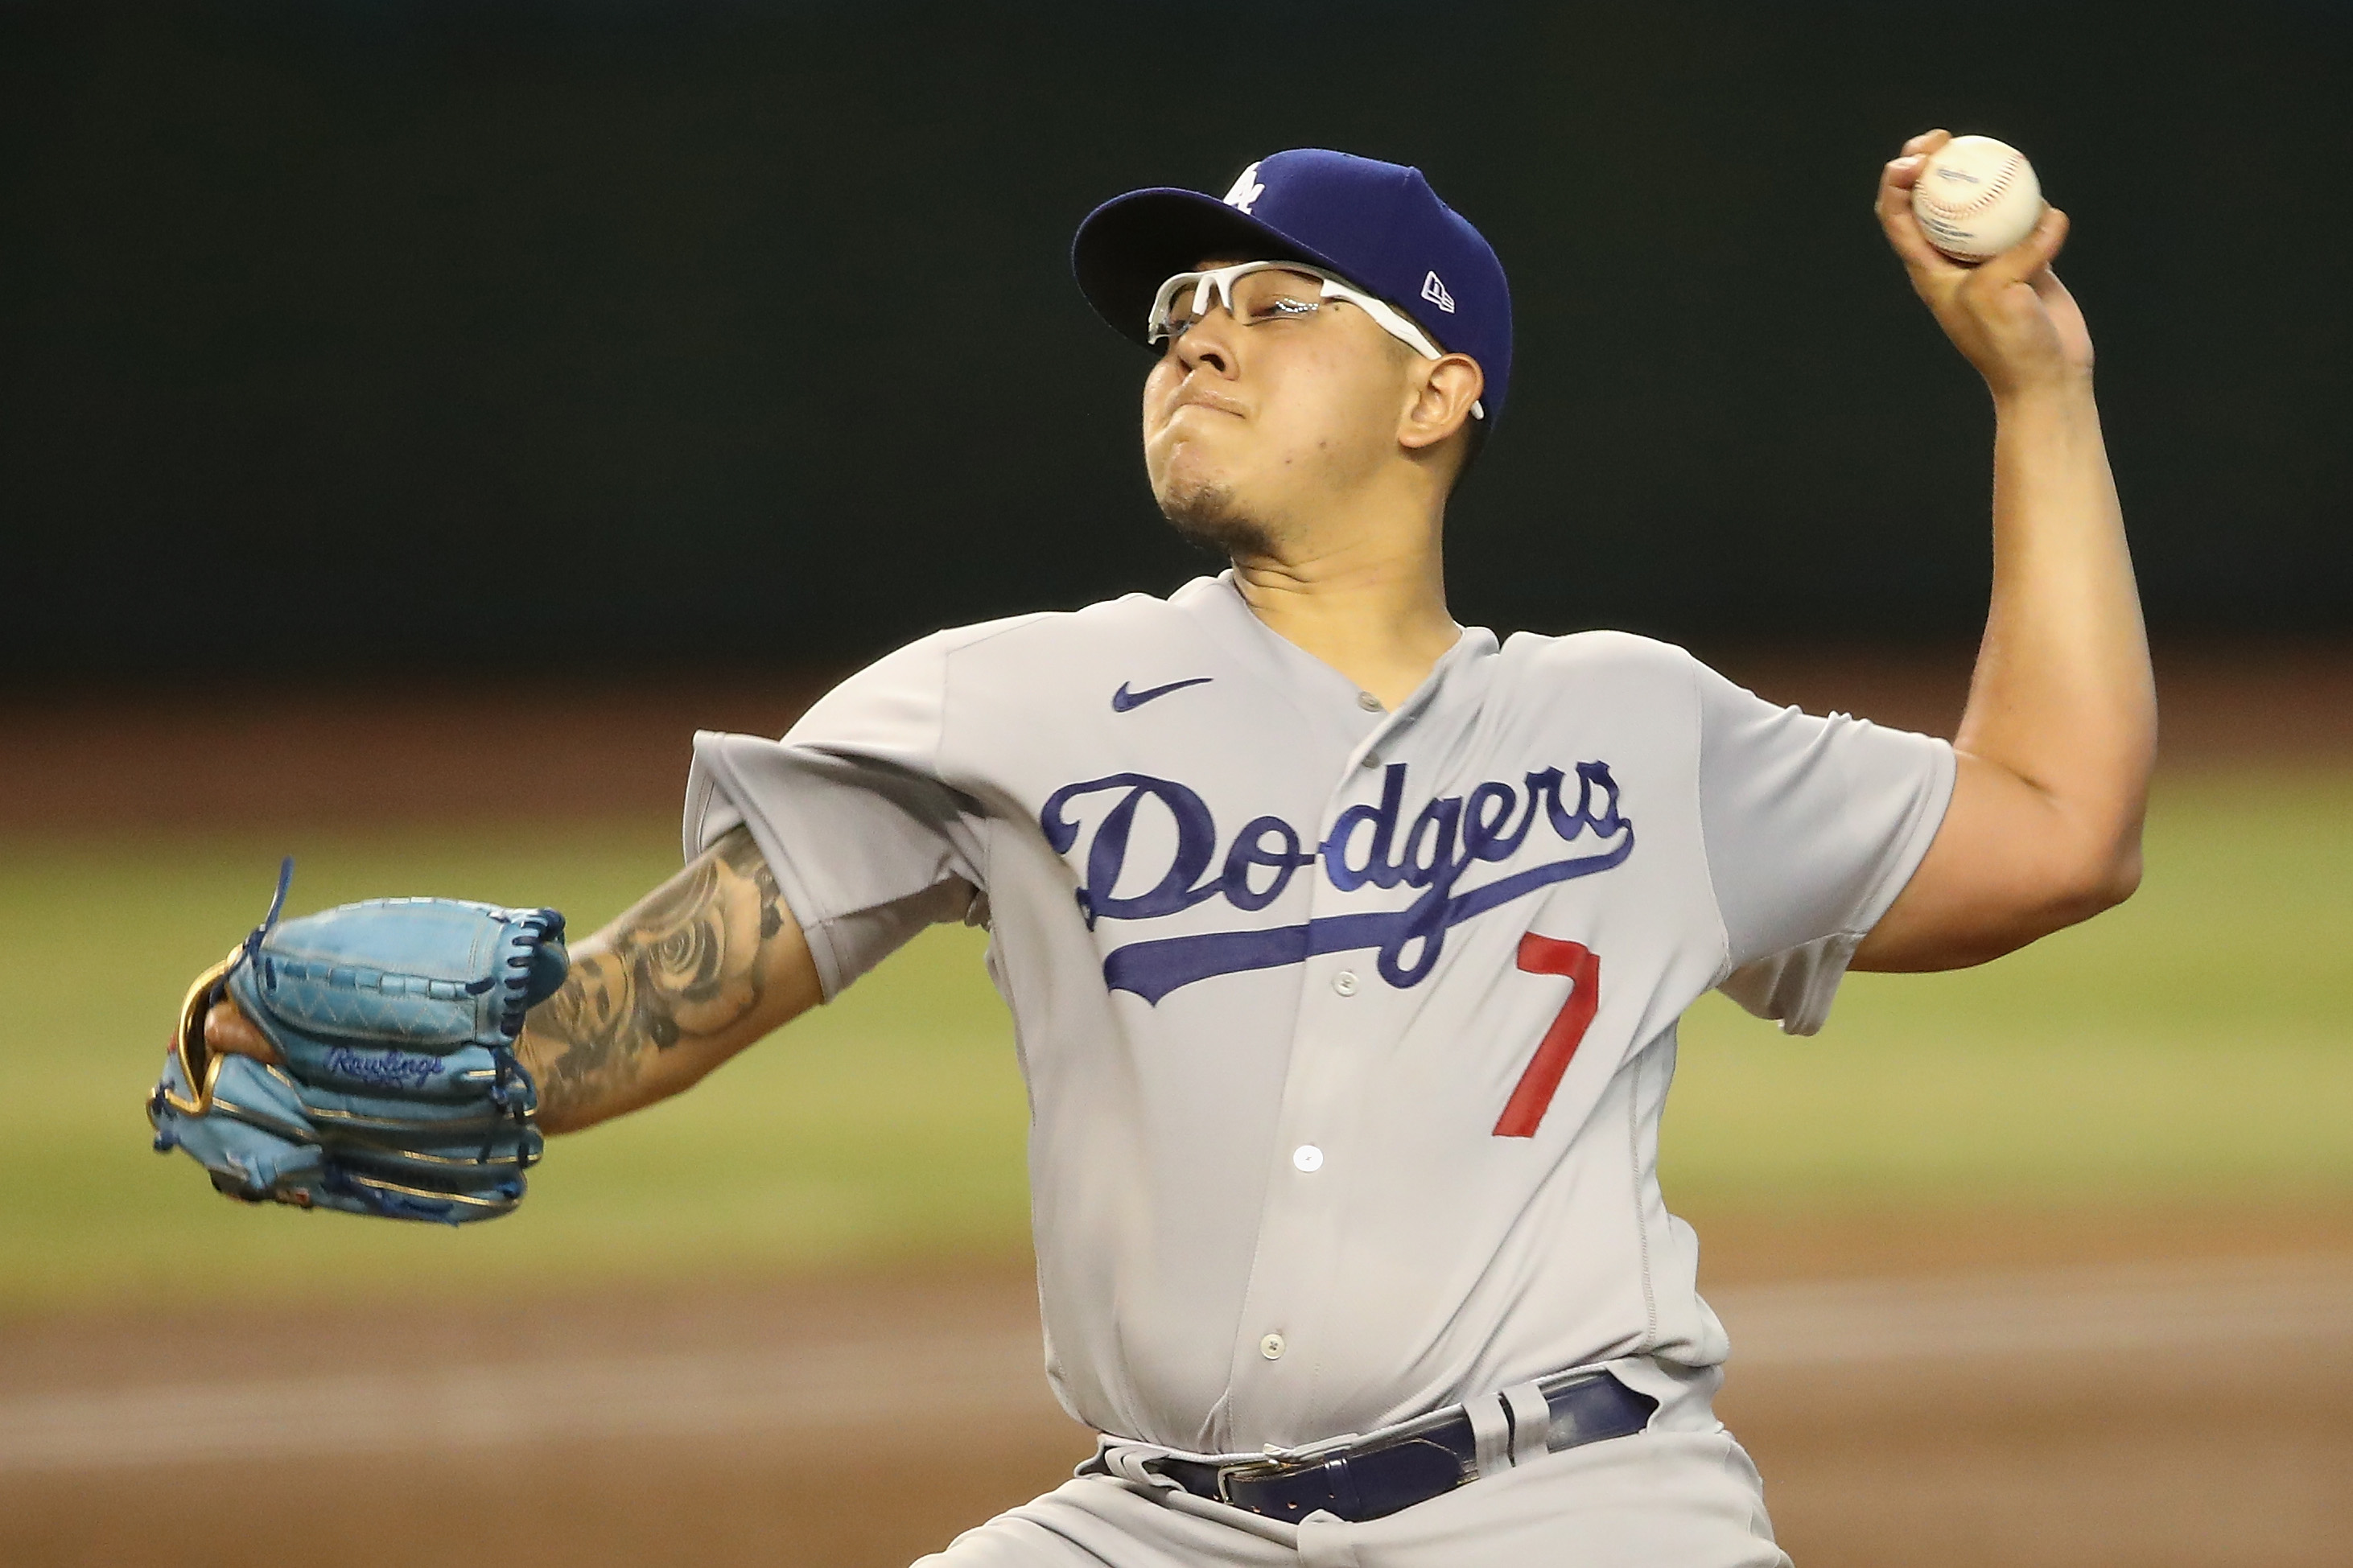 Starting pitcher Julio Urias #7 of the Los Angeles Dodgers throws a pitch against the Arizona Diamondbacks during the second inning of the MLB game at Chase Field on August 01, 2020 in Phoenix, Arizona.